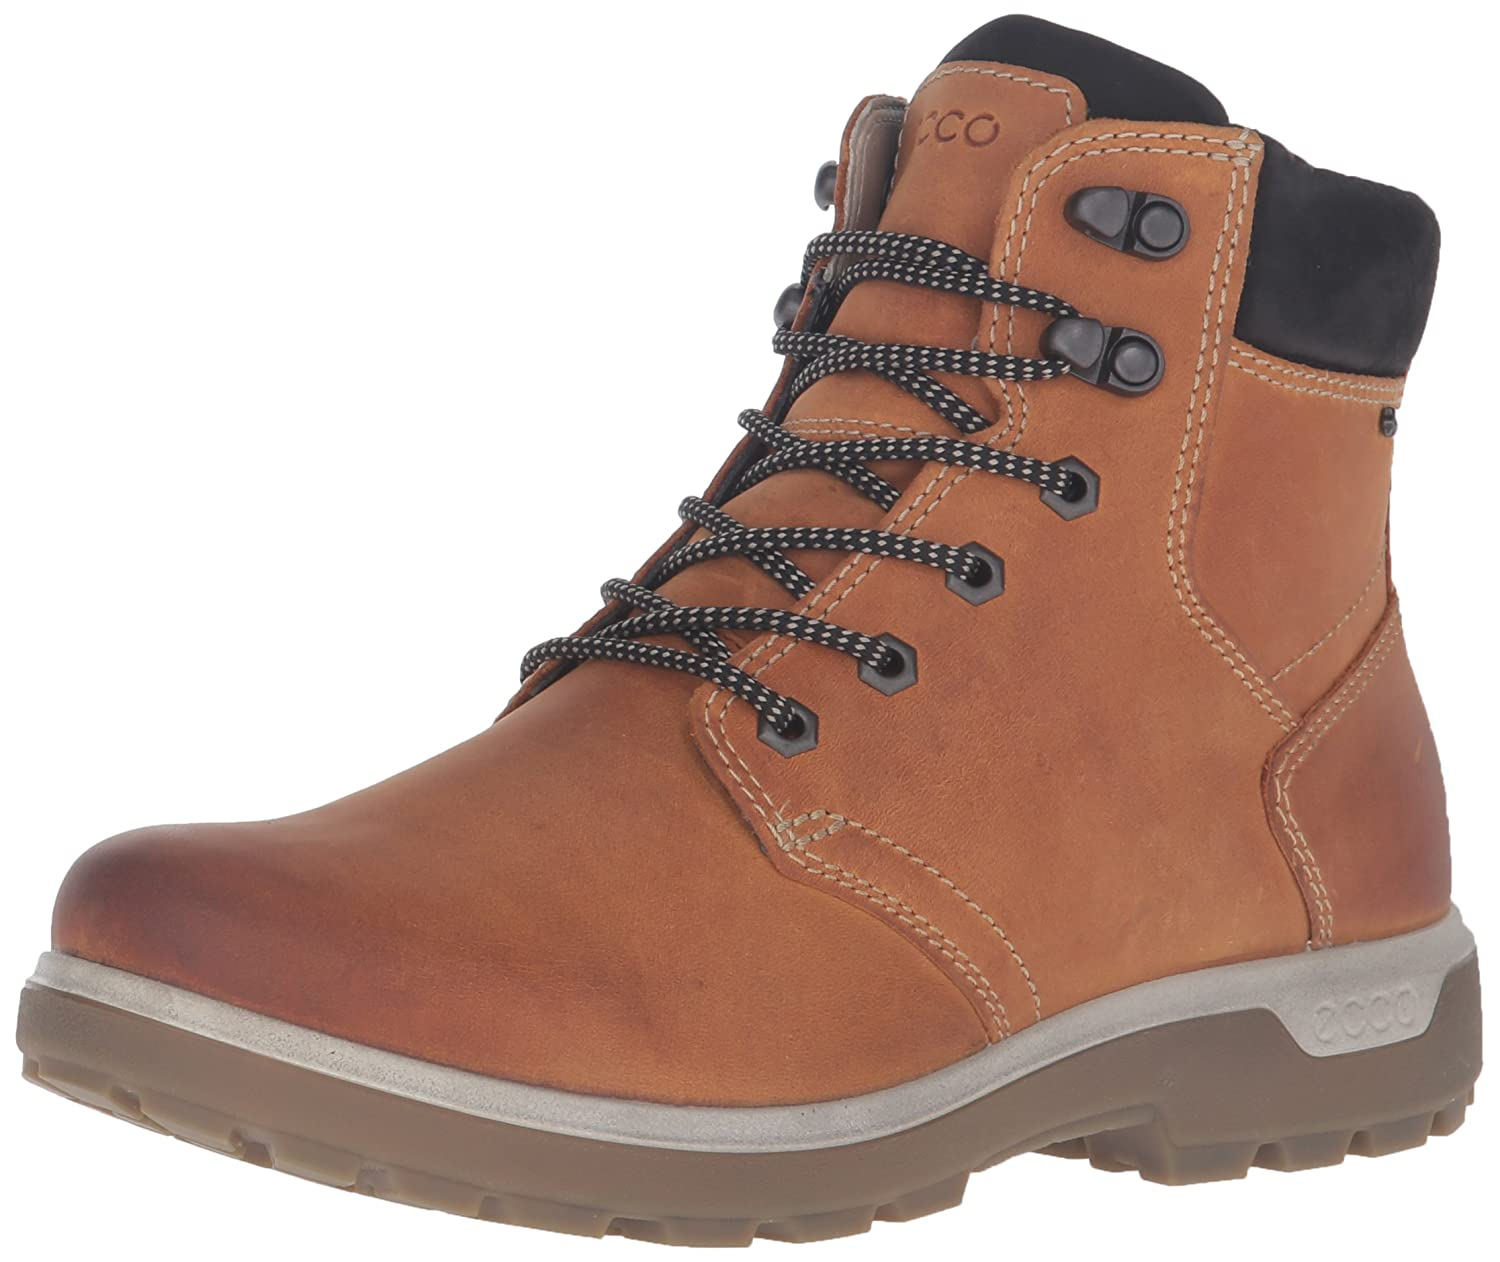 ECCO Women's Gora GTX Hiking Boot B00V3AC9CI 38 EU/7-7.5 M US|Amber/Black